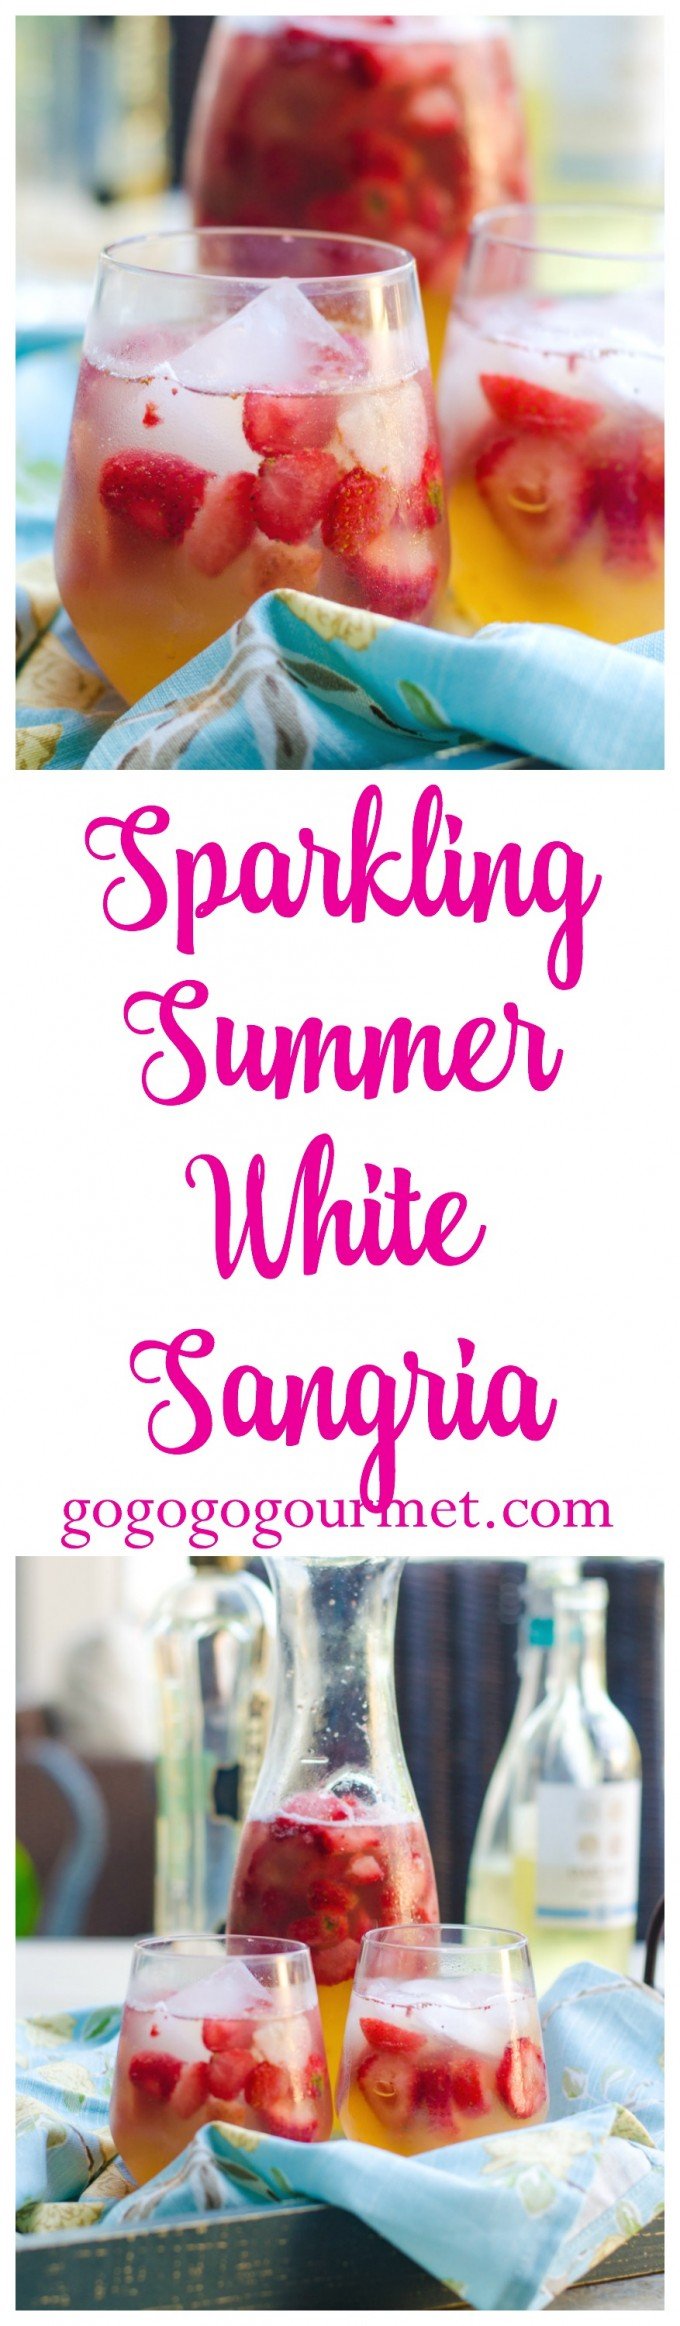 Light and refreshing, with just a bit of citrus and elderflower, you're sure to be drinking this sparkling white sangria all summer long! Sparkling Summer White Sangria | Go Go Go Gourmet @Go Go Go Gourmet